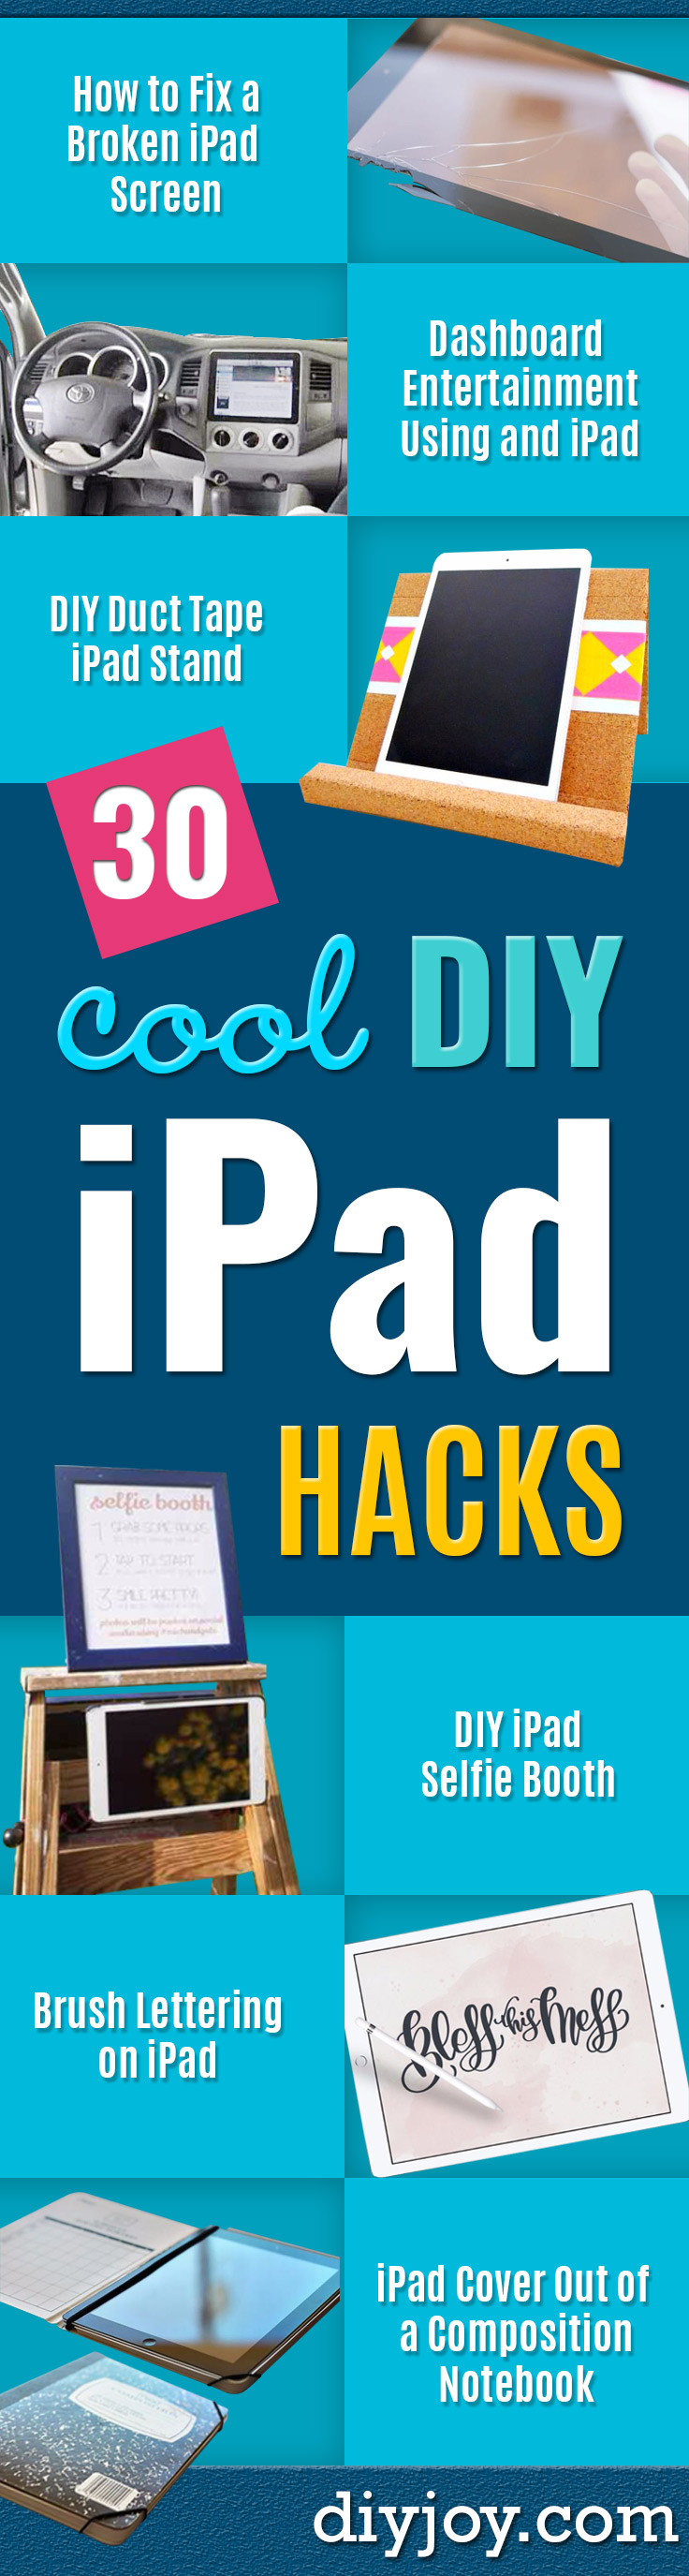 30 Ipad Hacks And Tips To Try Out Today